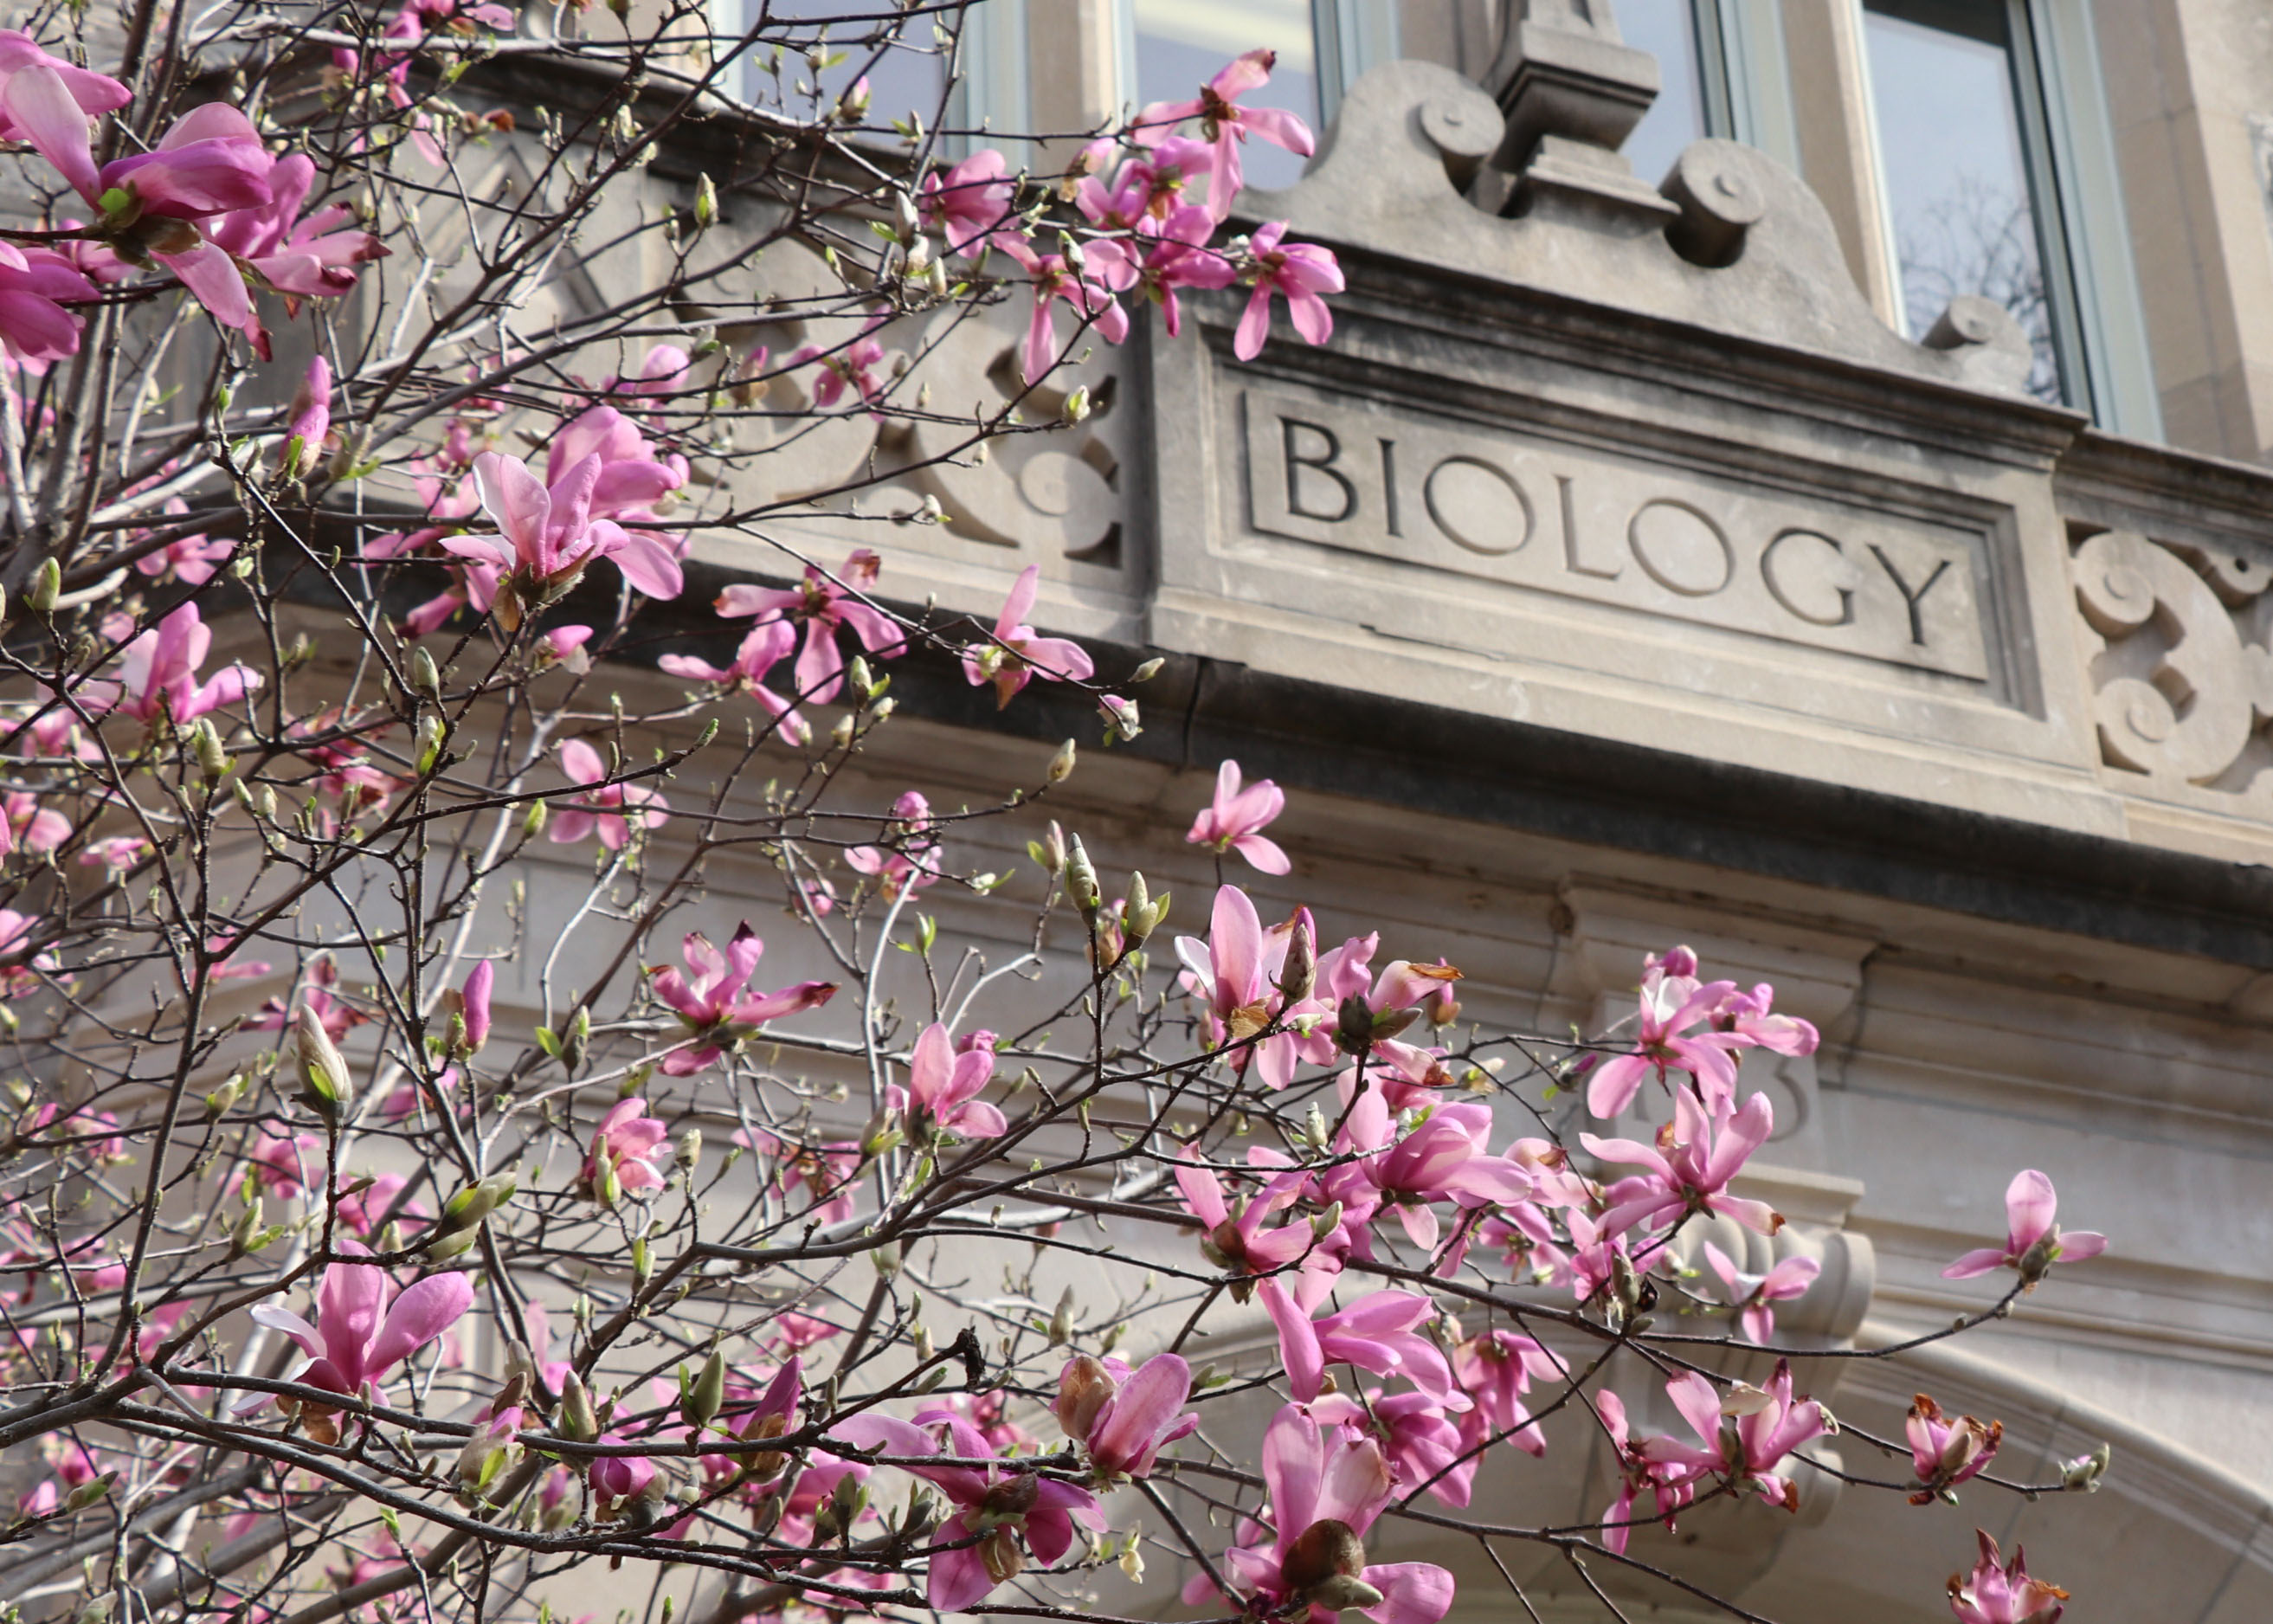 Biology Building with blooms